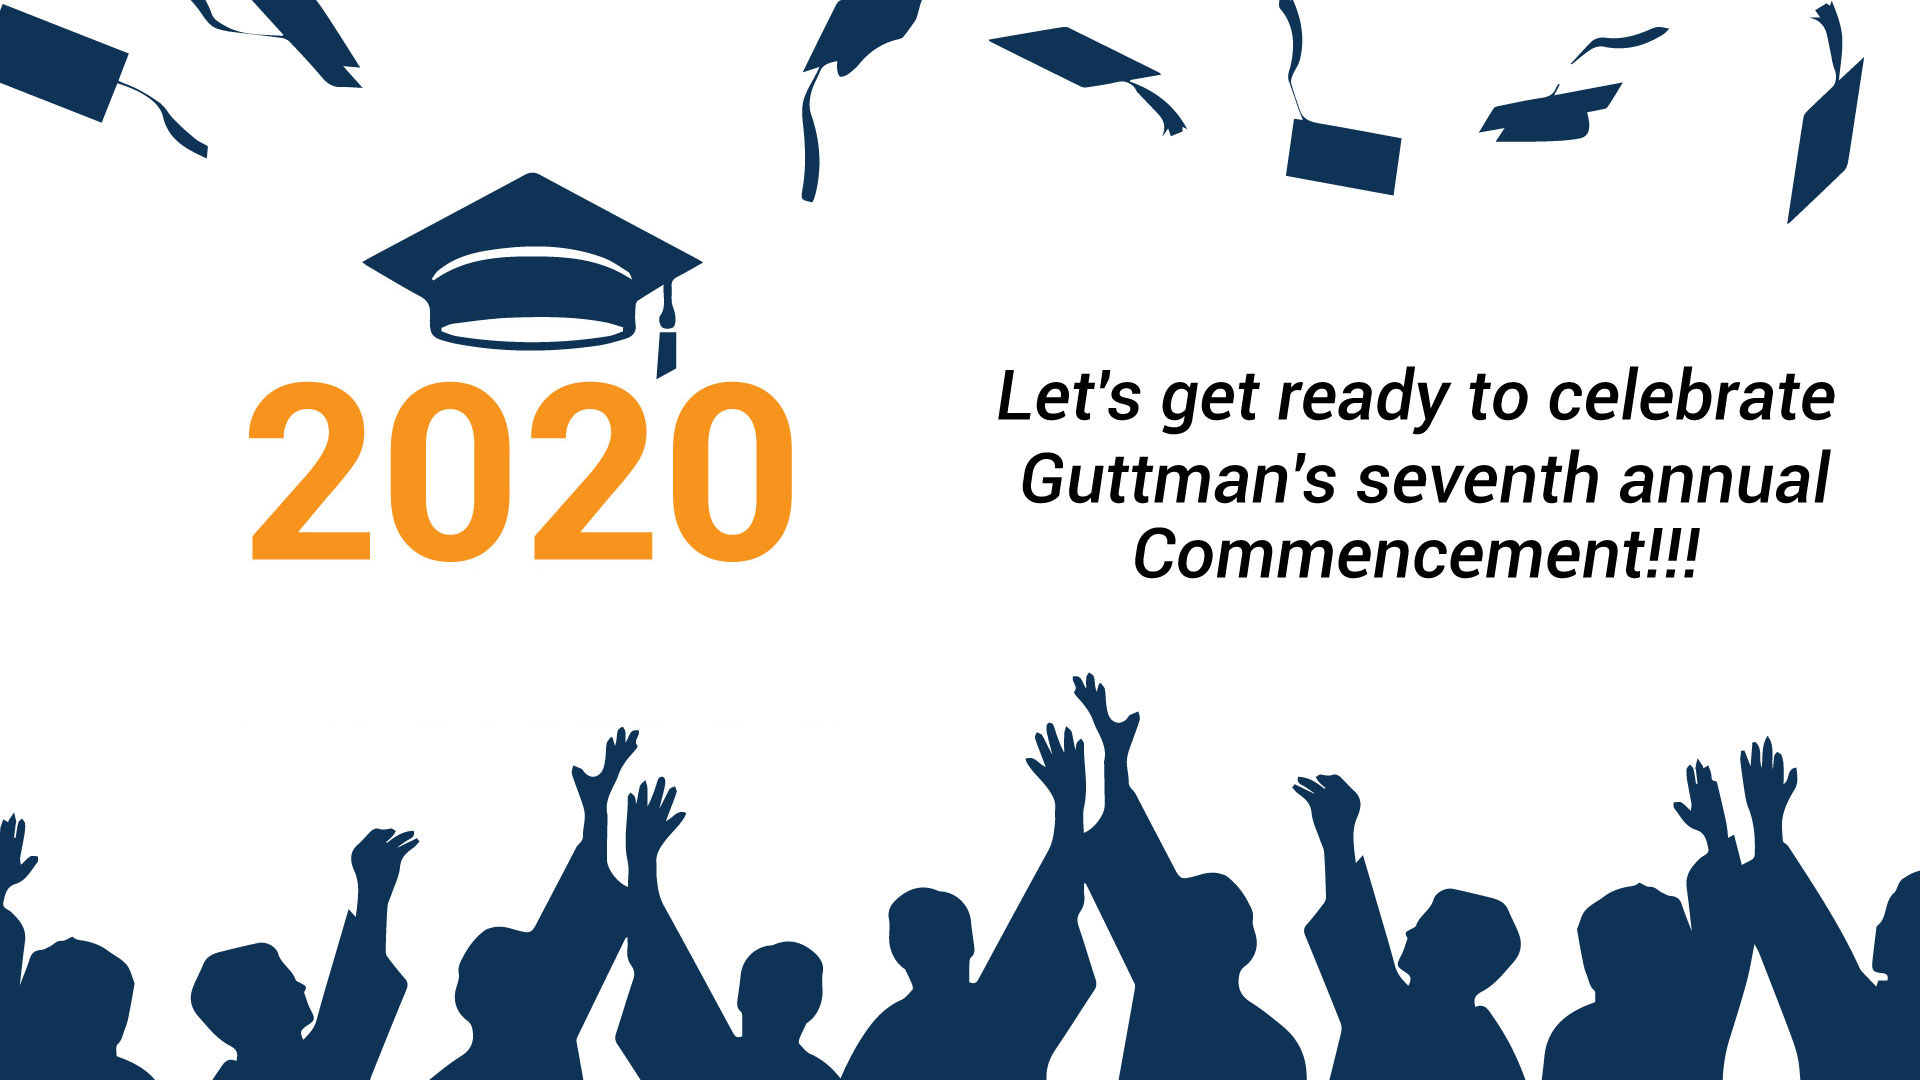 Let's get ready to celebrate Guttman's seventh commencement